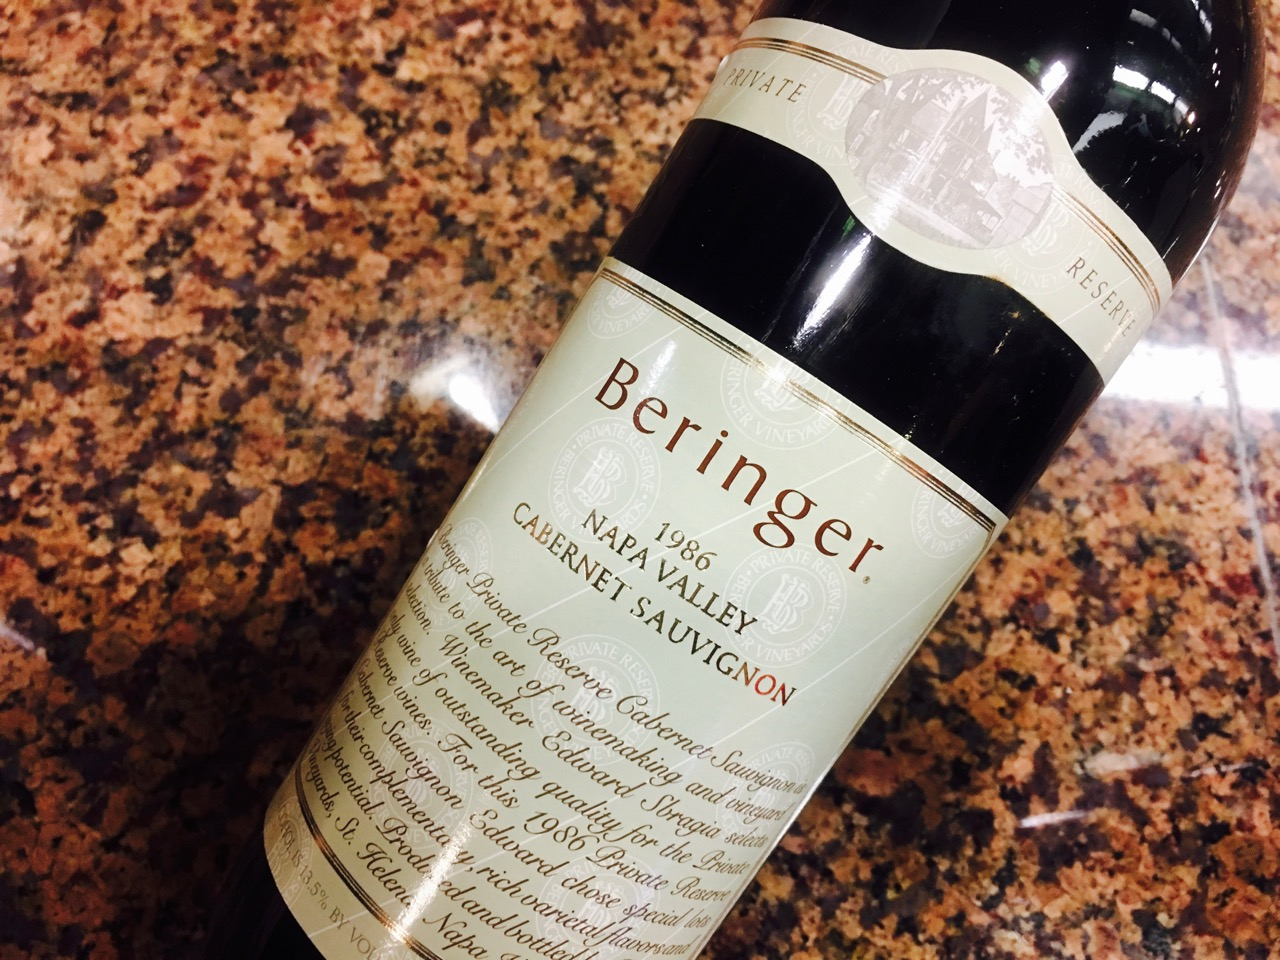 1986 Beringer Vineyards Cabernet Sauvignon Private Reserve Napa Valley